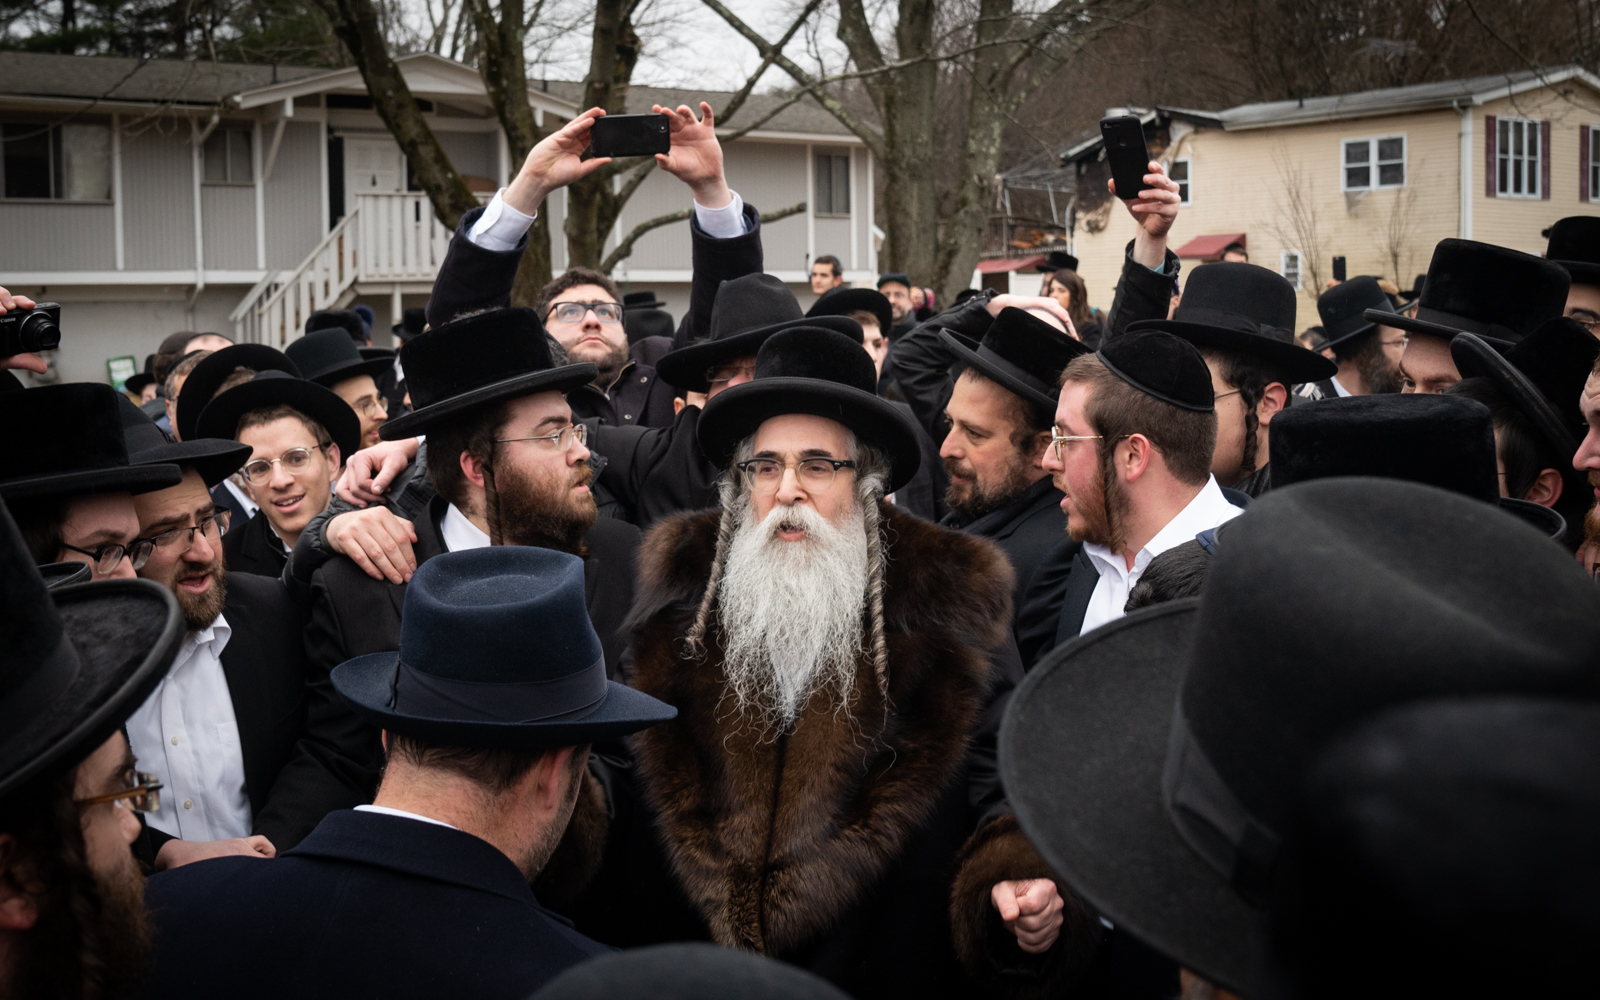 Rabbi Chaim Leibish Rottenberg, center, outside his home, a day after a knife-wielding attacker injured five inside during a Hannukah ceremony. (Luke Tress/Times of Israel)